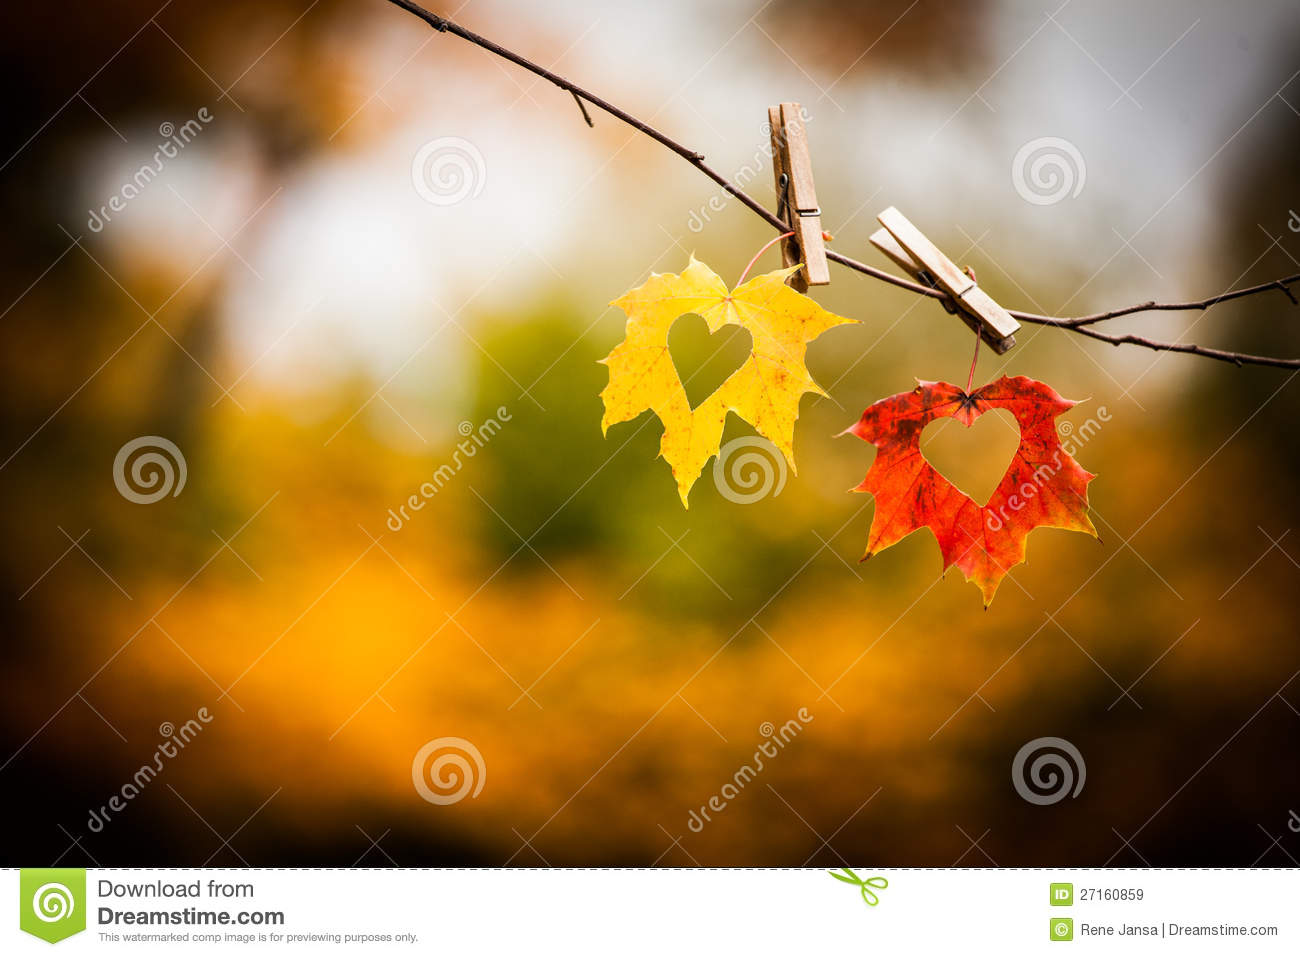 Fall Foliage Deskt Op Wallpaper Autumn Leaves With Hearts Royalty Free Stock Images